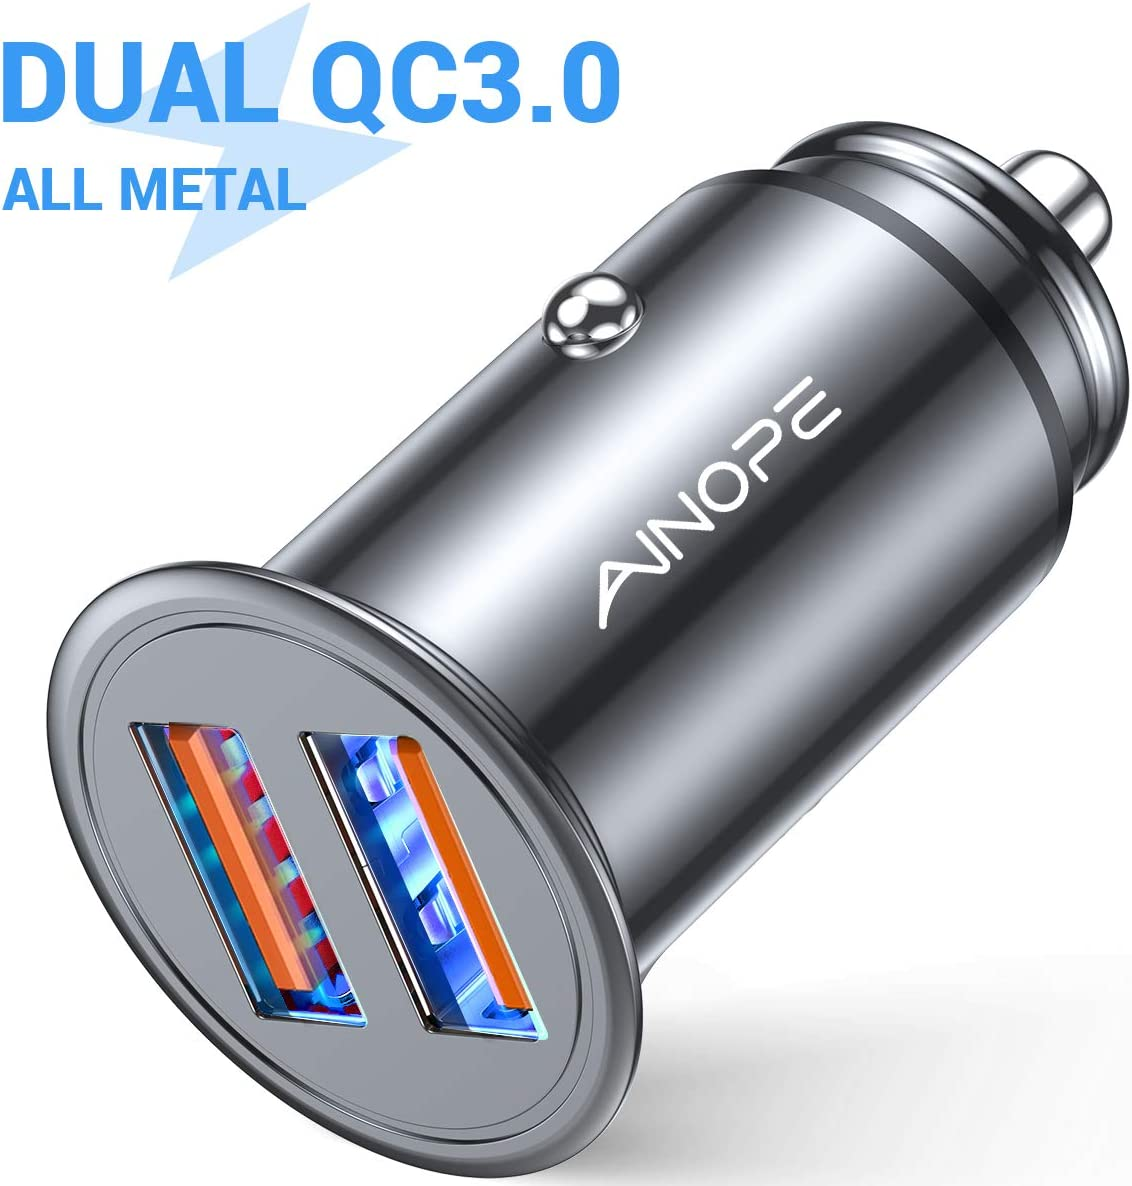 AINOPE USB Car Charger, [Dual QC3.0 Port] 36W/6A [All Metal] Fast Car Charger Mini Cigarette Lighter USB Charger Quick Charge Compatible with iPhone 11/11 pro/XR/X/XS, Note 9/Galaxy S10/S9/S8-SILVER